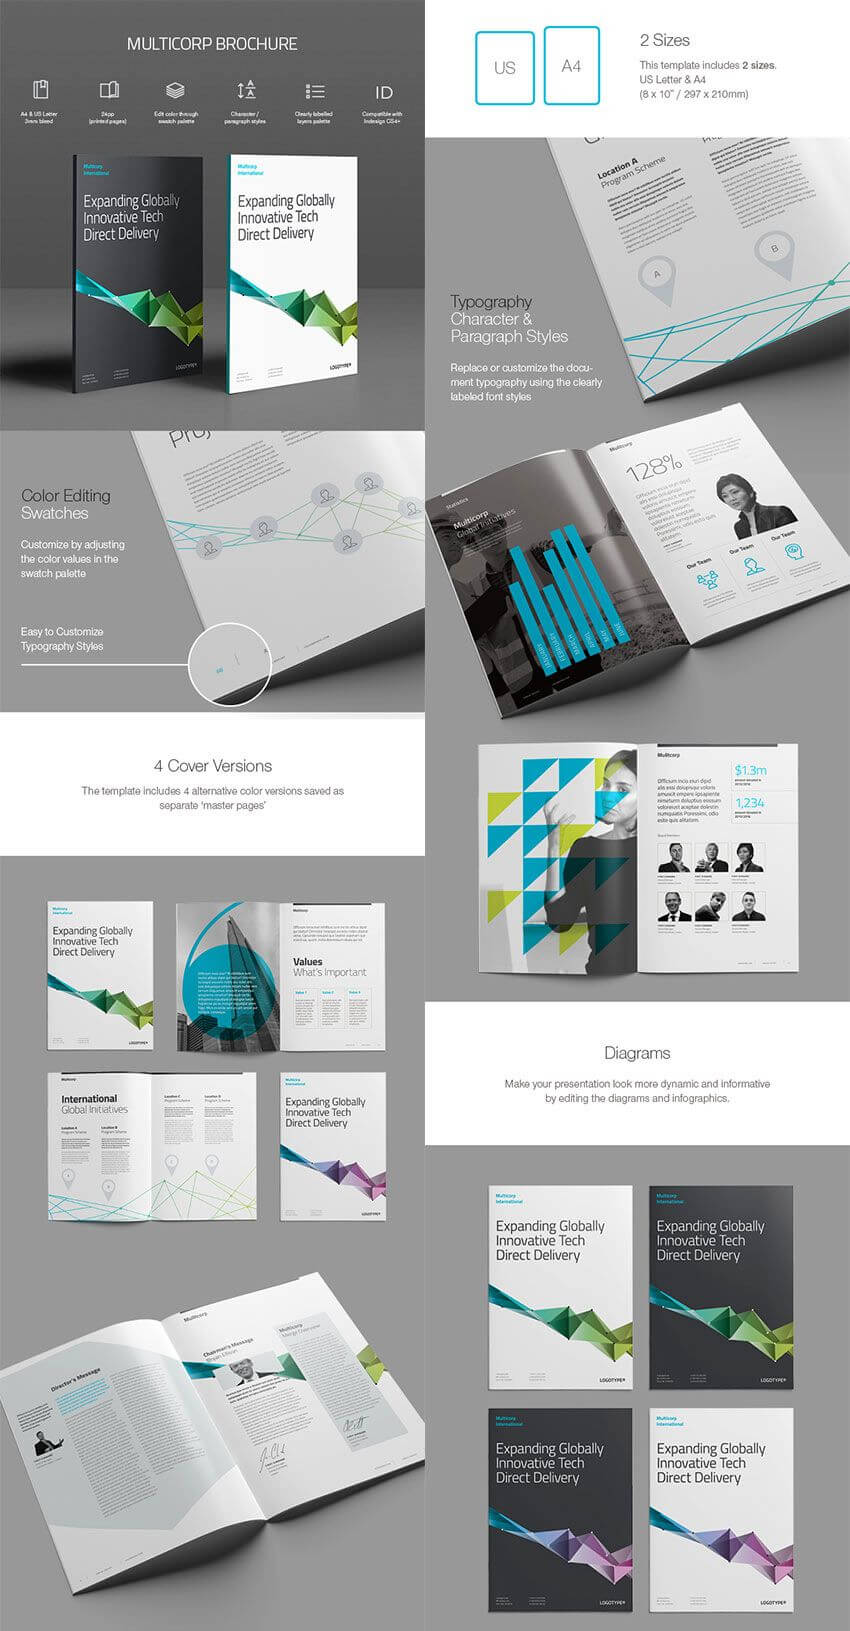 20 Best Indesign Brochure Templates - For Creative Business within Brochure Template Indesign Free Download